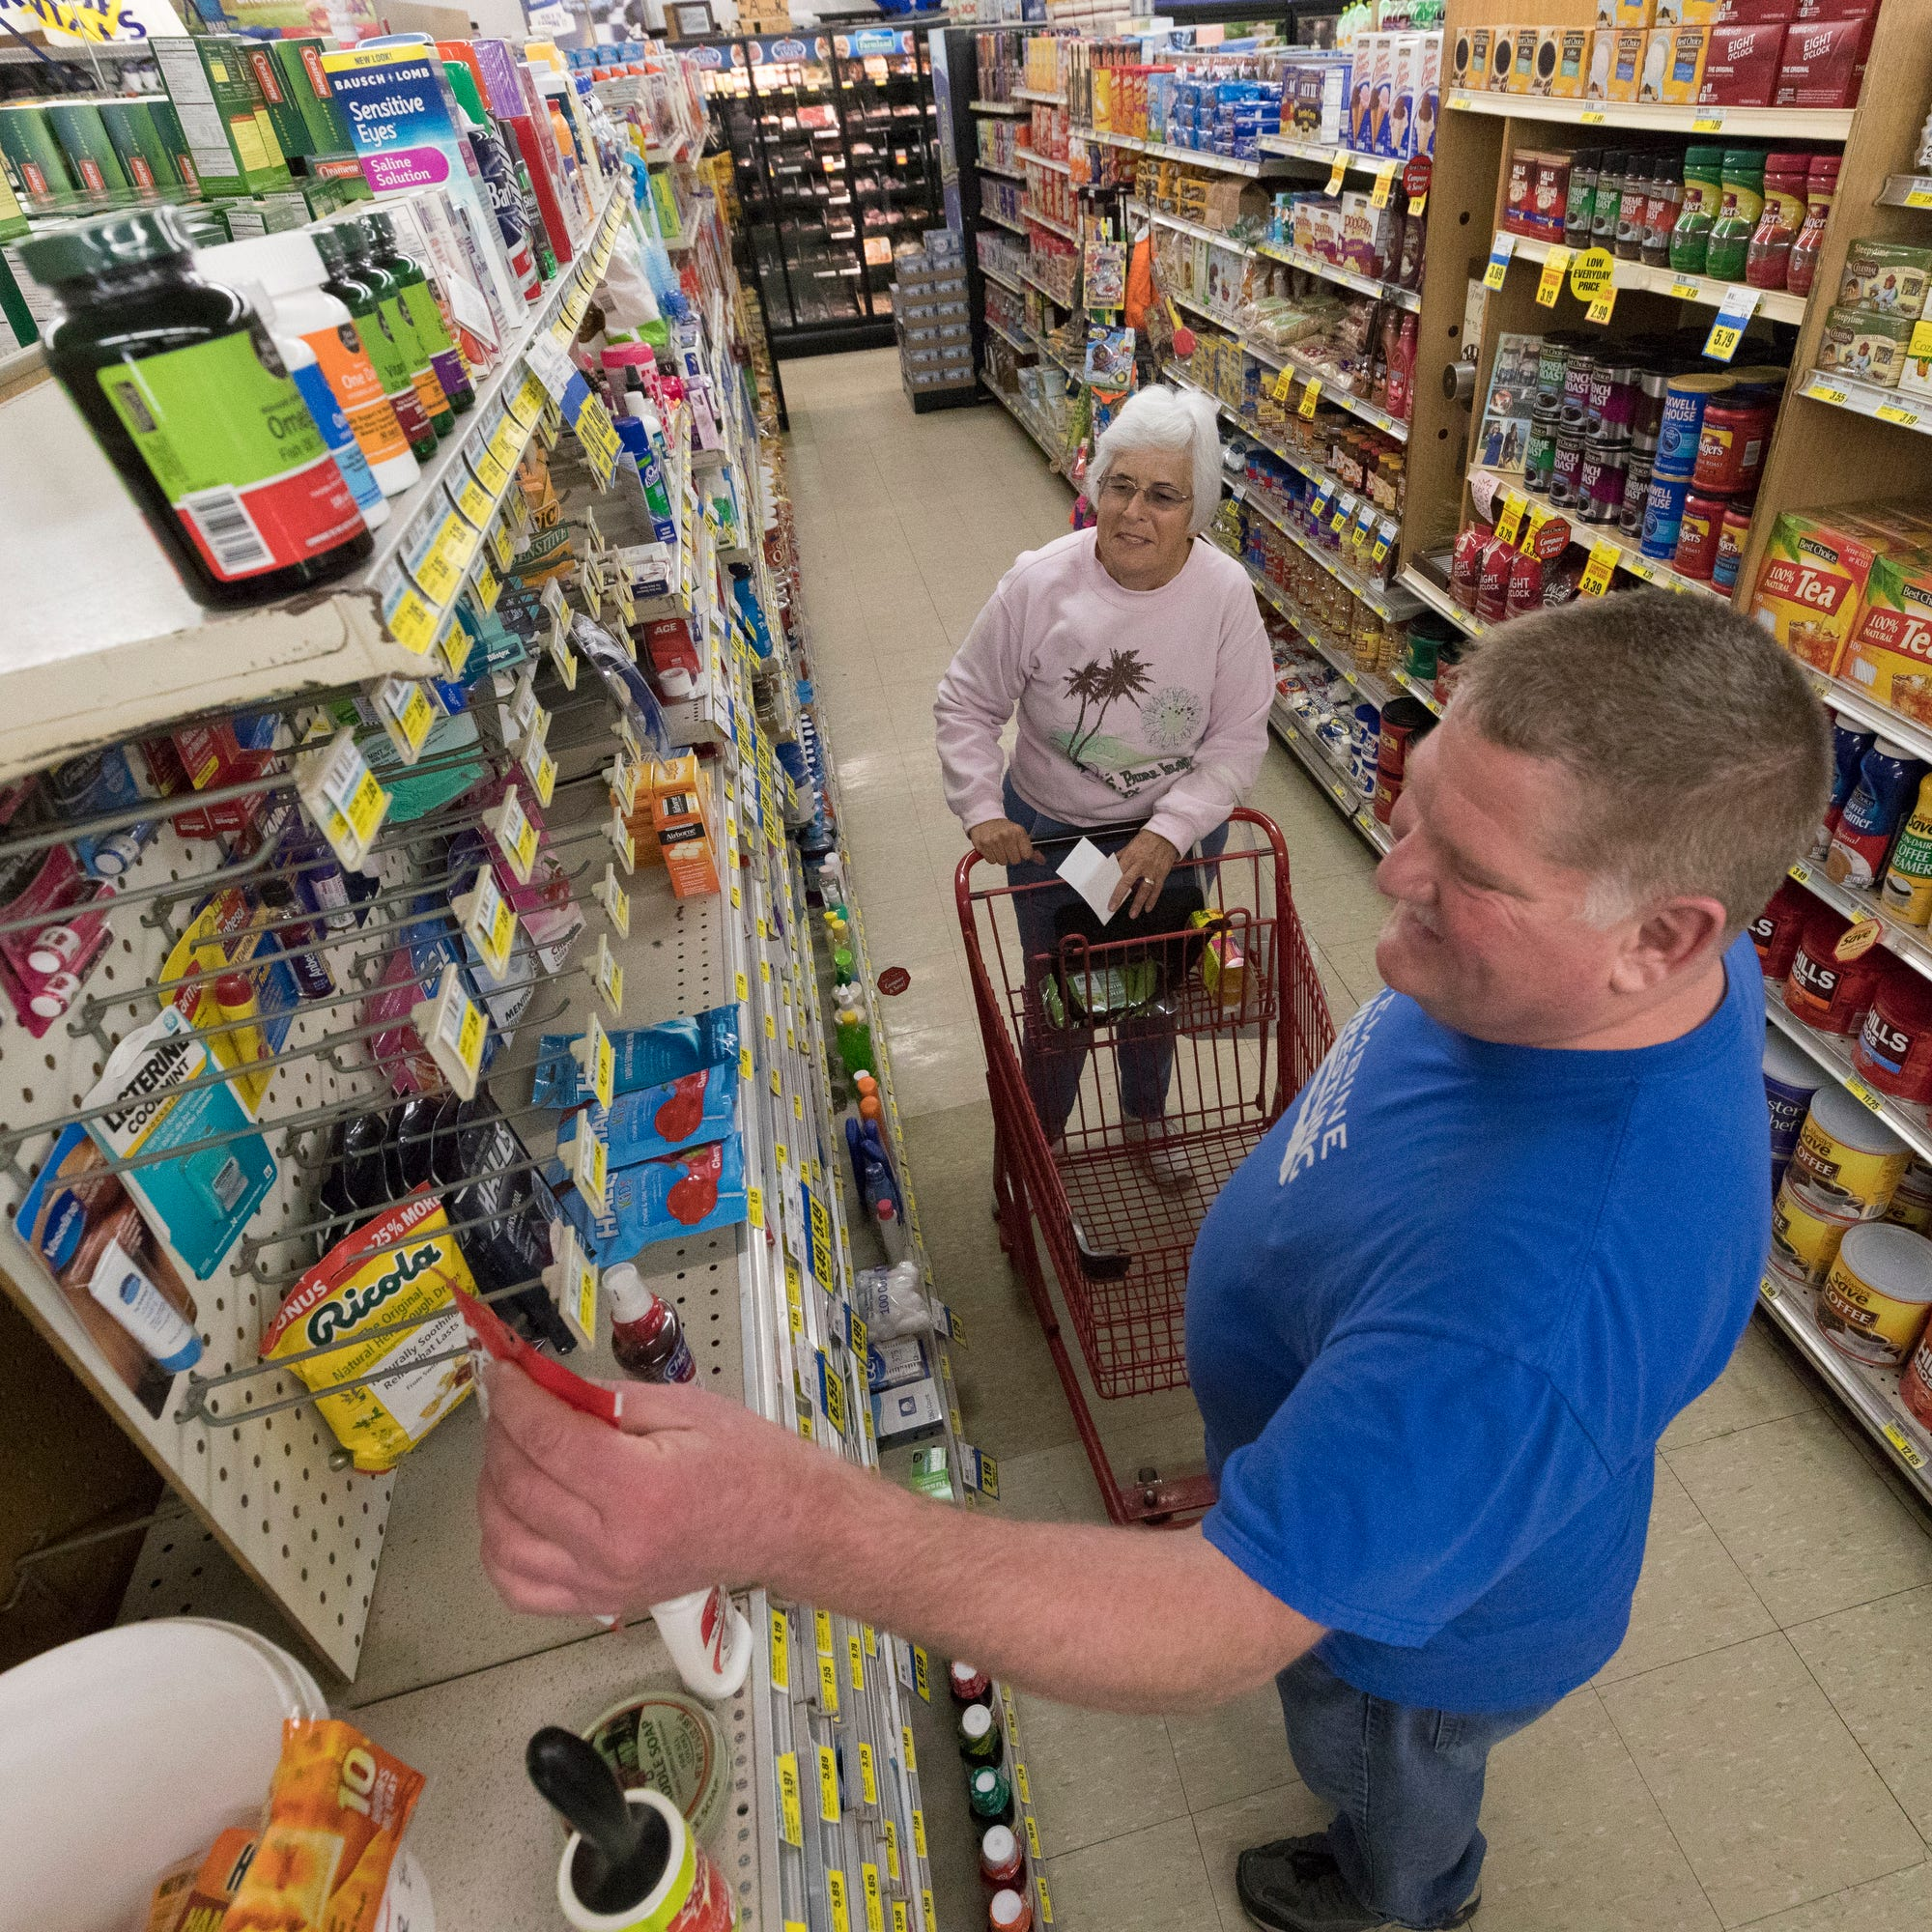 Dollar General's aggressive expansion into small Wisconsin towns has hurt locally owned grocery stores